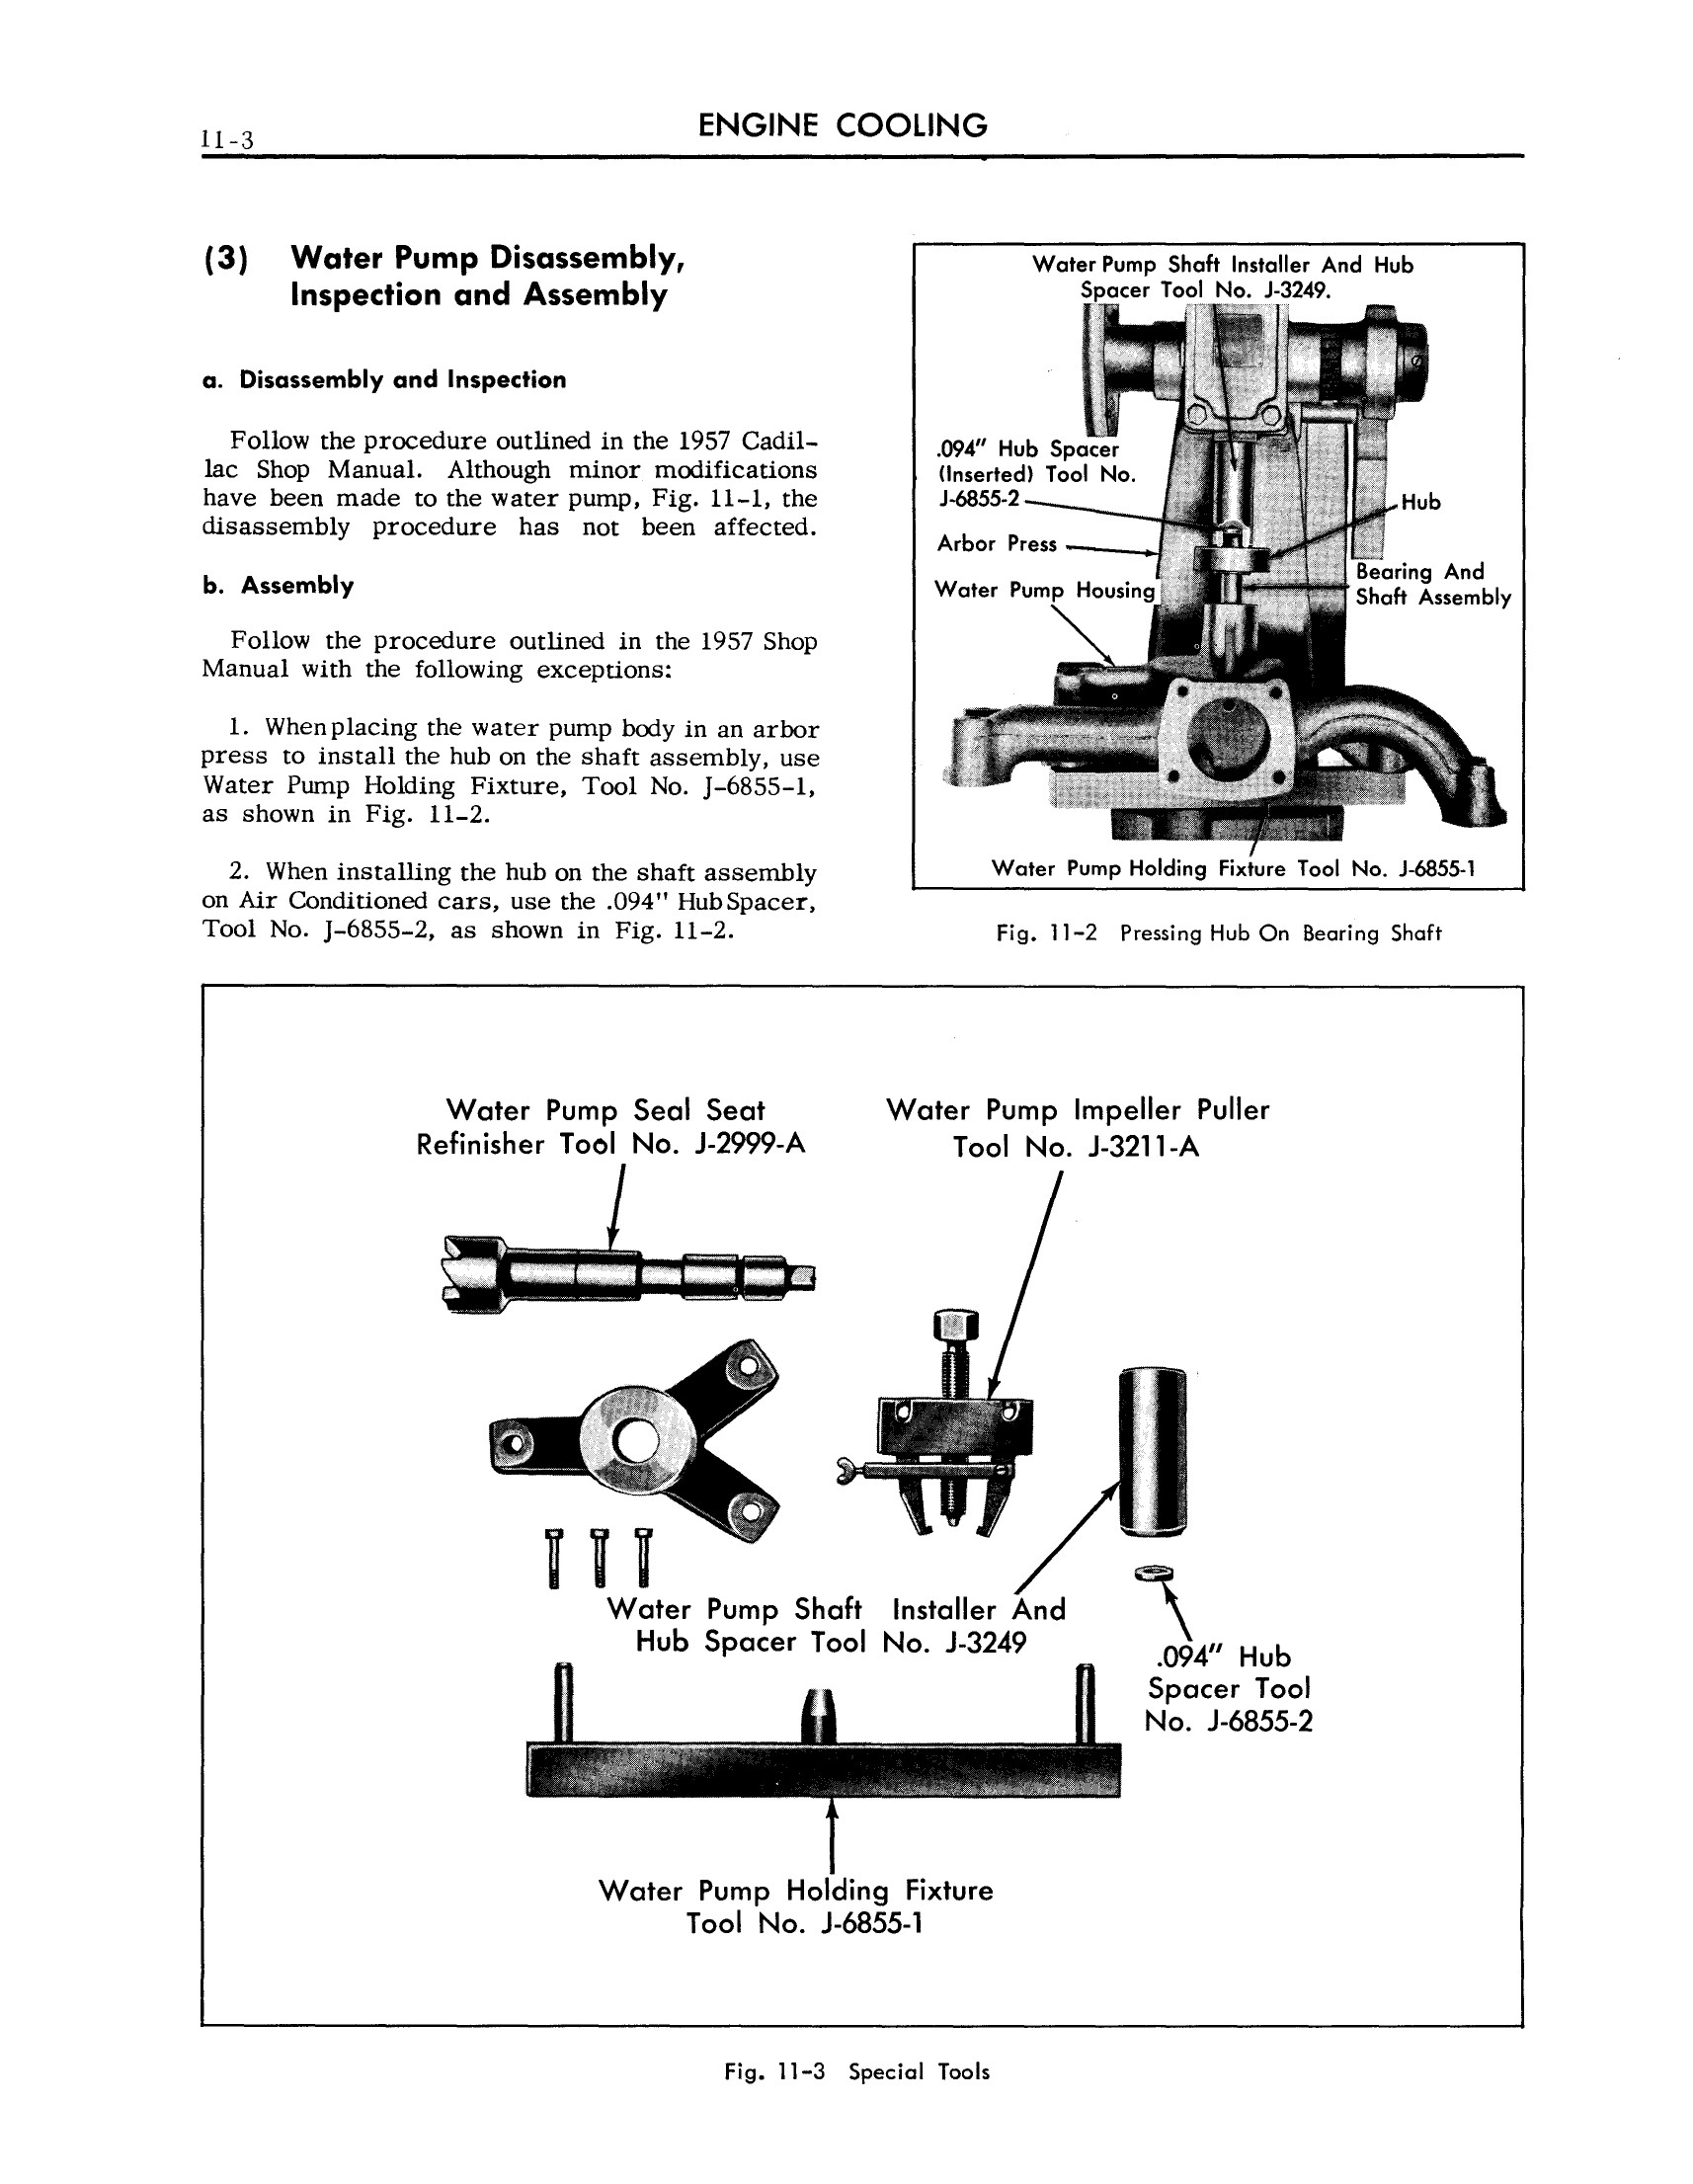 1958 Cadillac Shop Manual- Engine Cooling Page 3 of 4